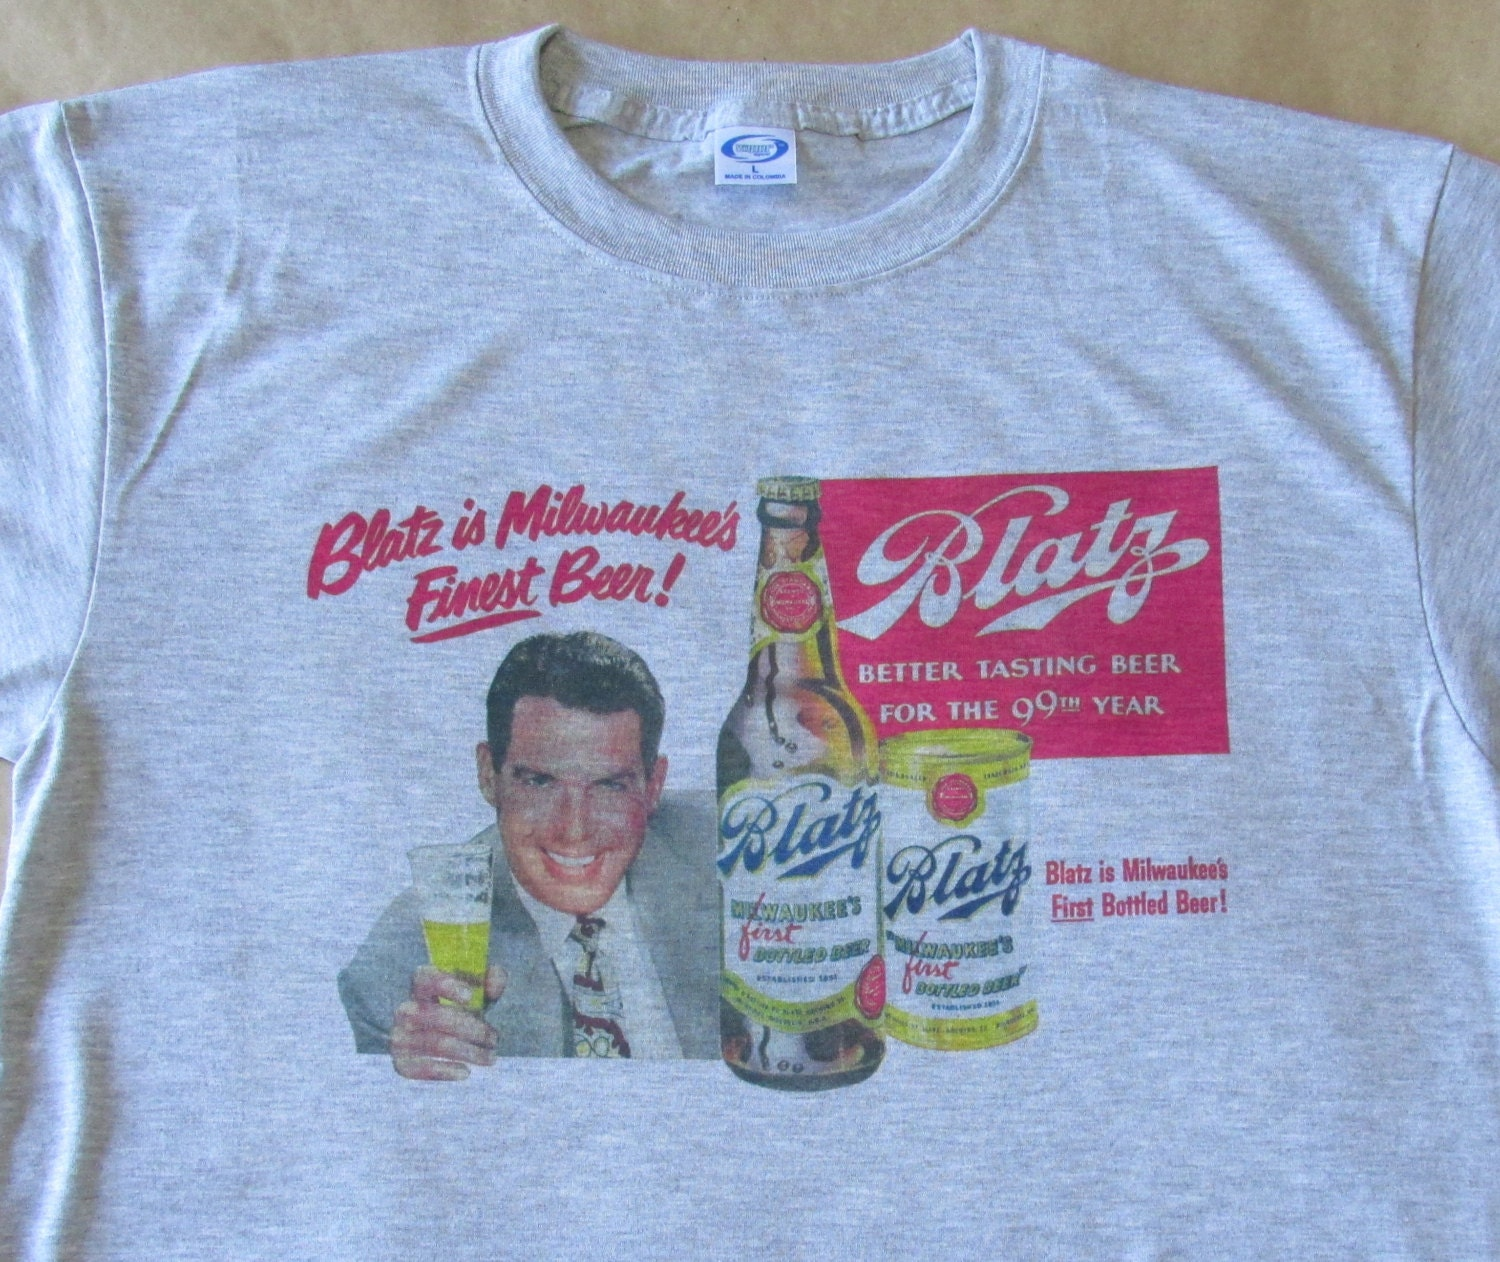 1950s Men's Ties, Bow Ties – Vintage, Skinny, Knit 1950s Blatz Beer Graphic T-Shirt - Ashen Grey Size Small To 3xl New Cool Vintage Look Unique Retro Design Great Gift Classic $19.95 AT vintagedancer.com